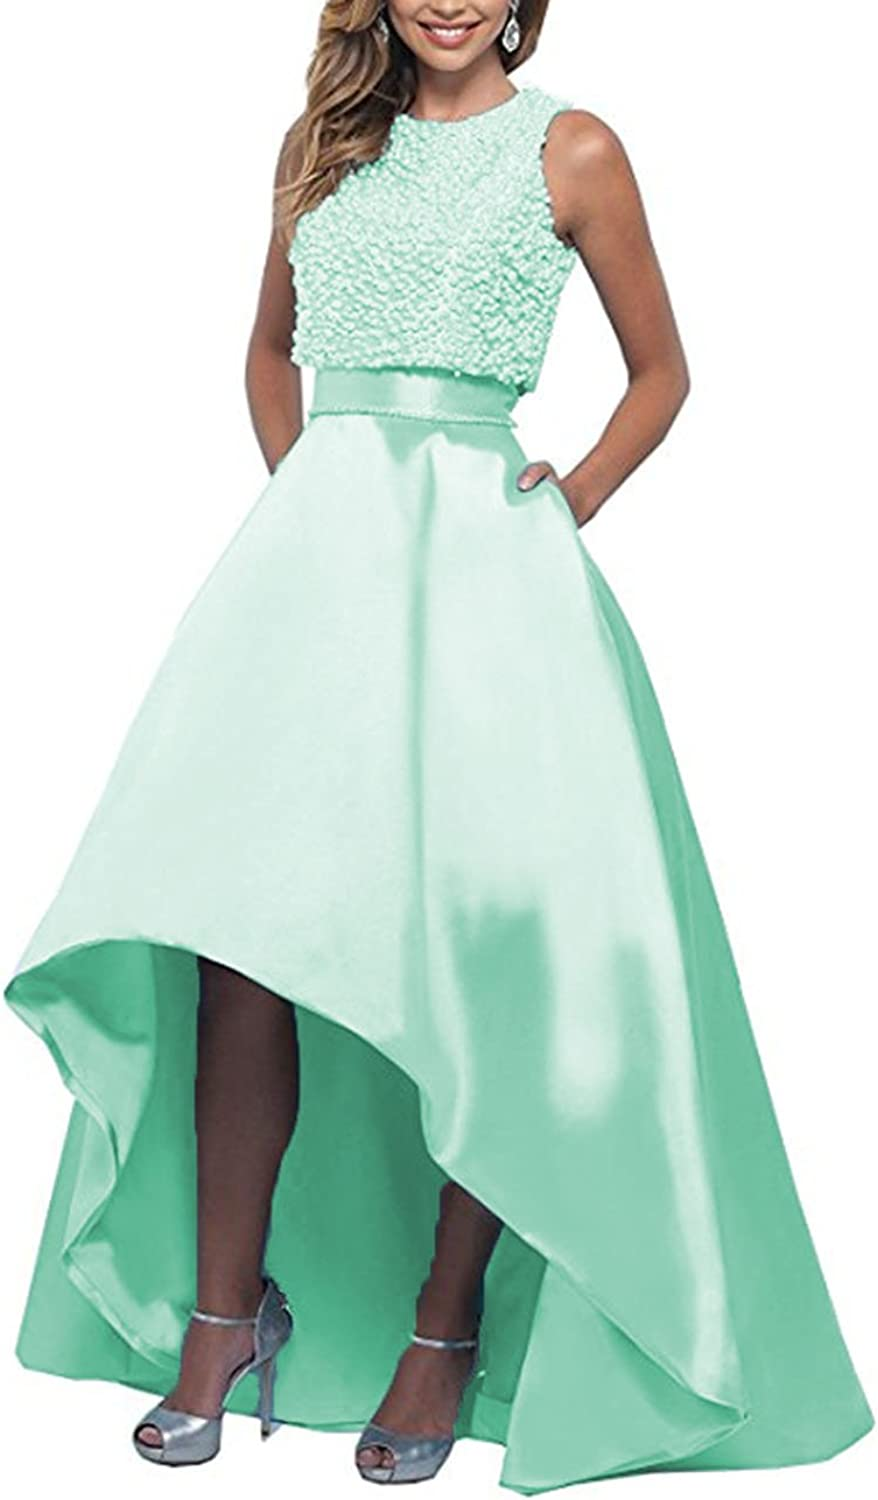 Beautydress Womens High Low Prom Dresses Top with Pearls Evening Party Gowns